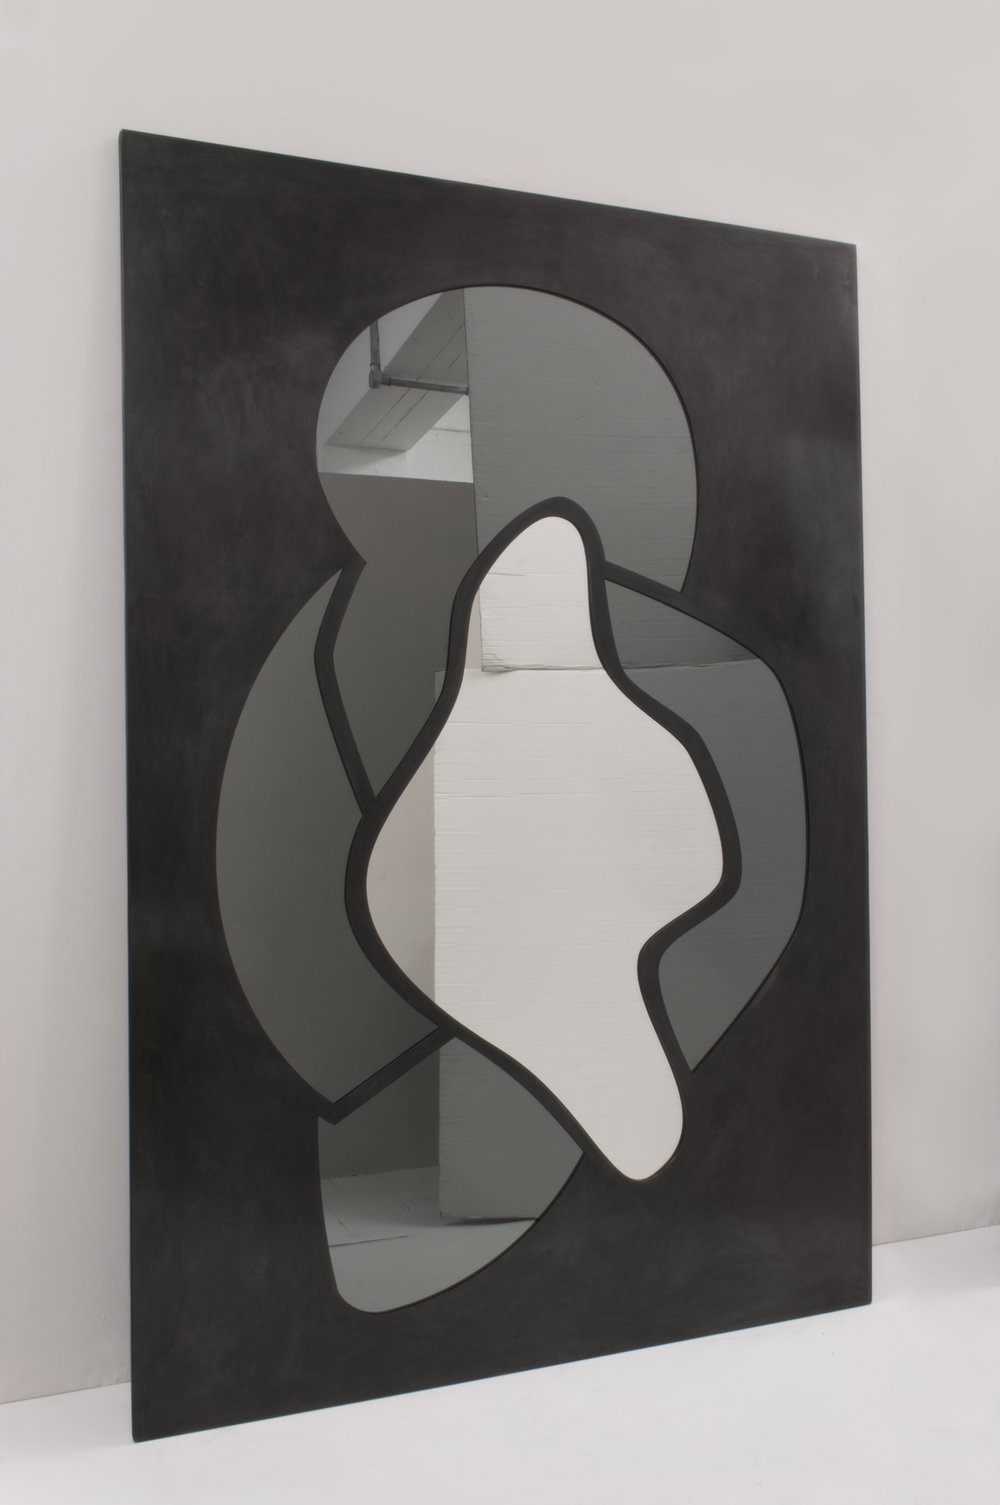 Collectible graphic mirror by c.a. walac.